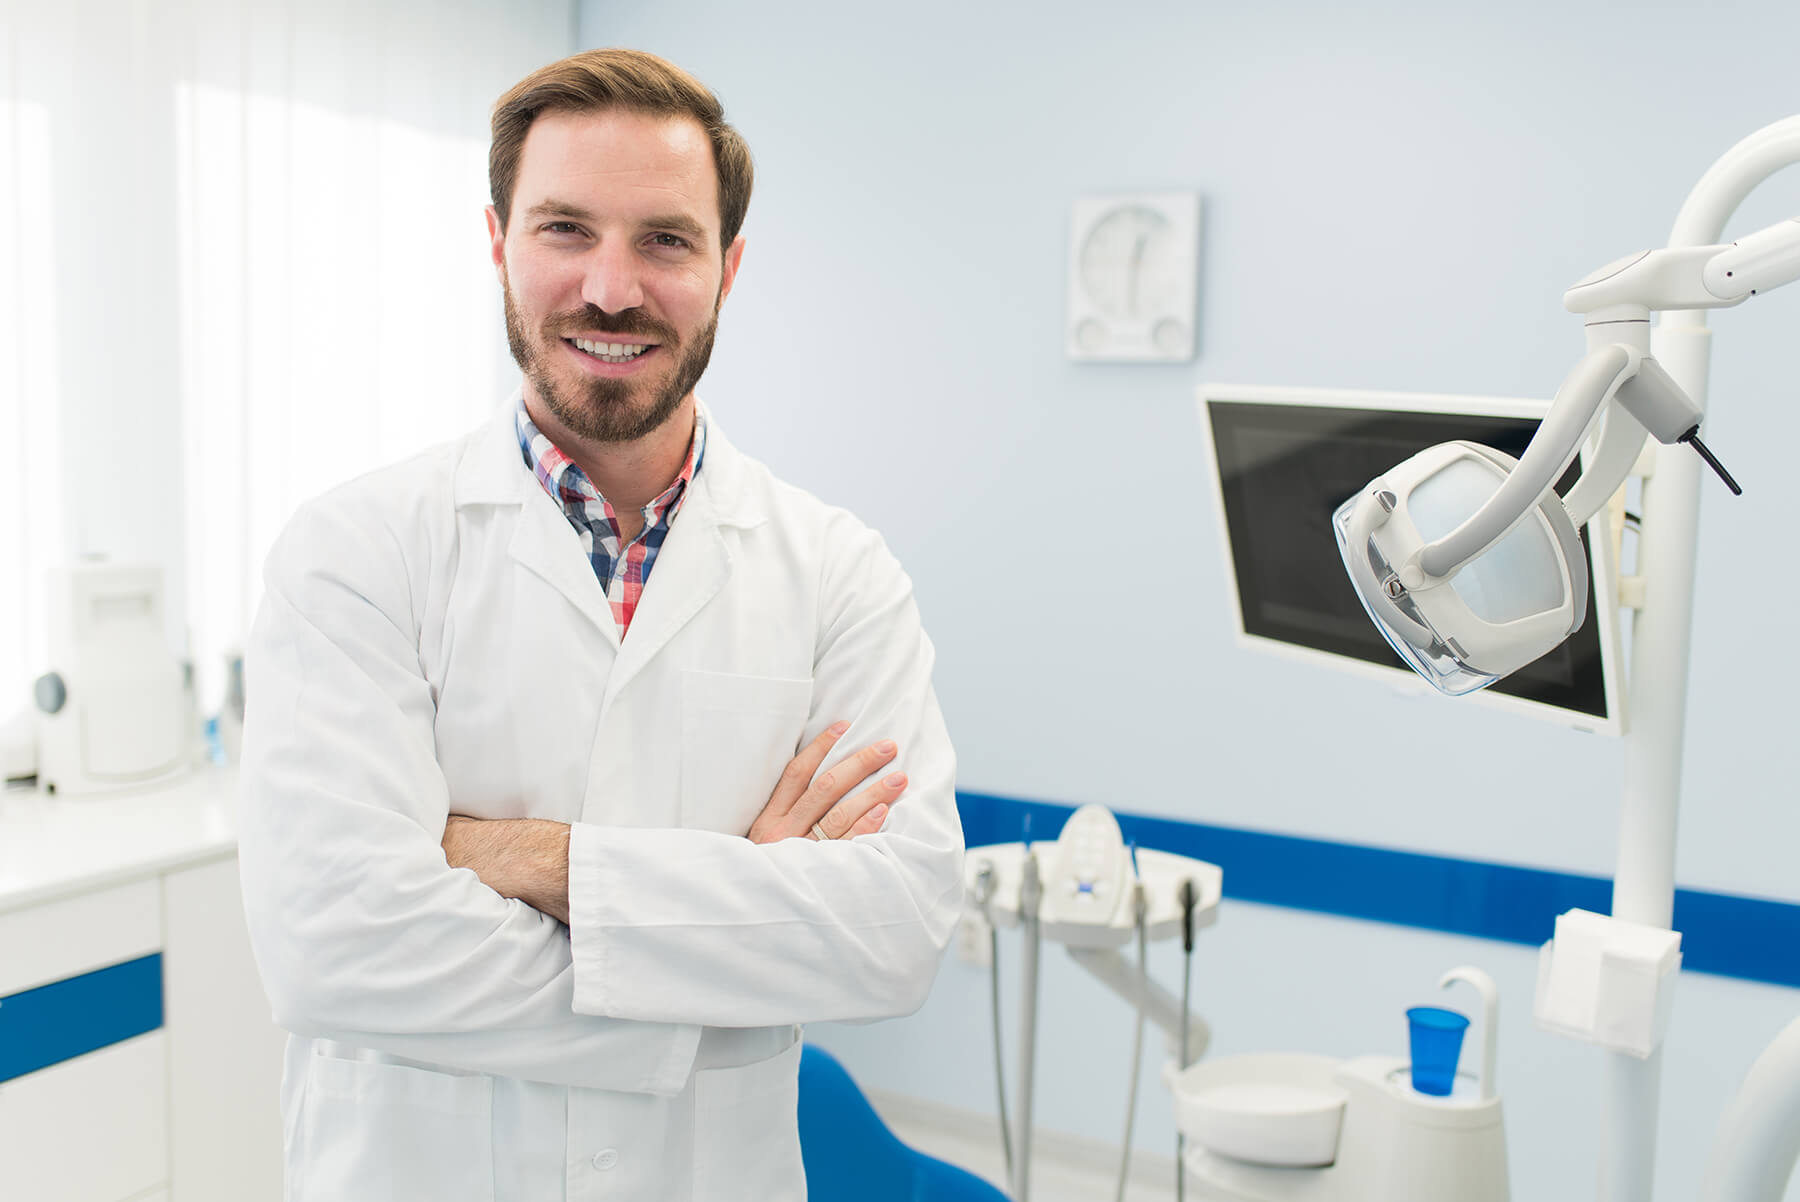 Male dentist standing in front of dental chair